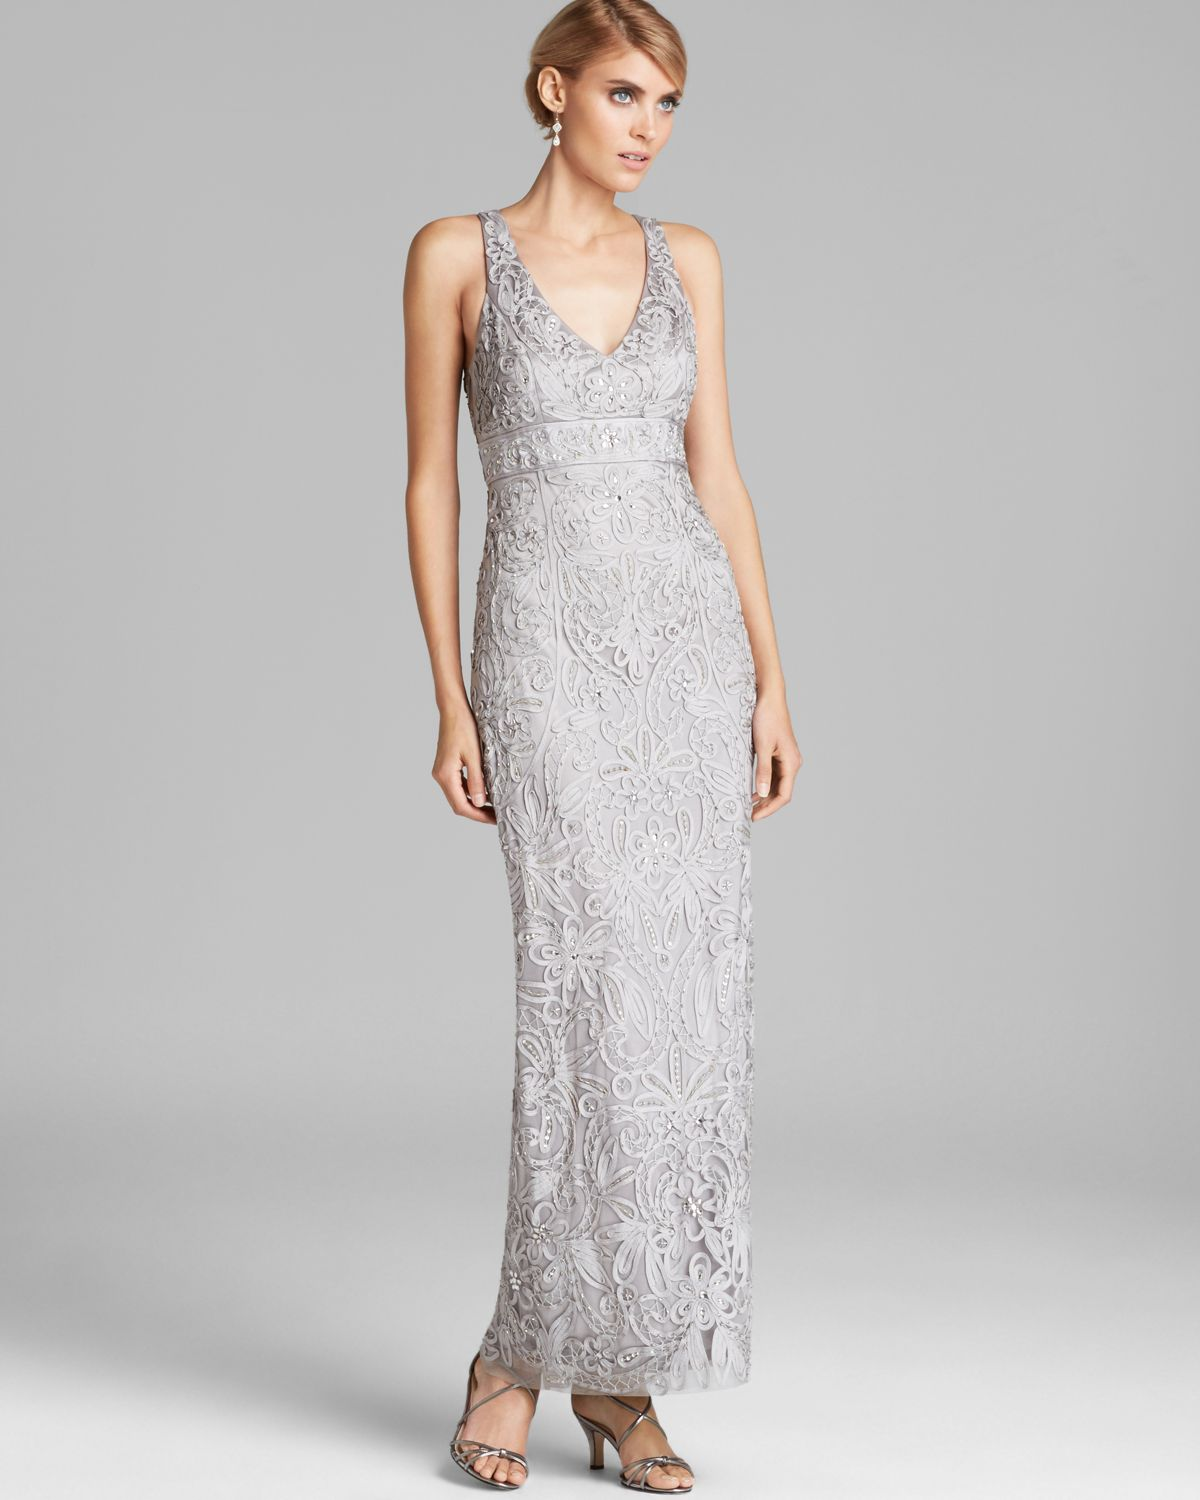 Lyst - Sue Wong V Neck Beaded Gown in Black